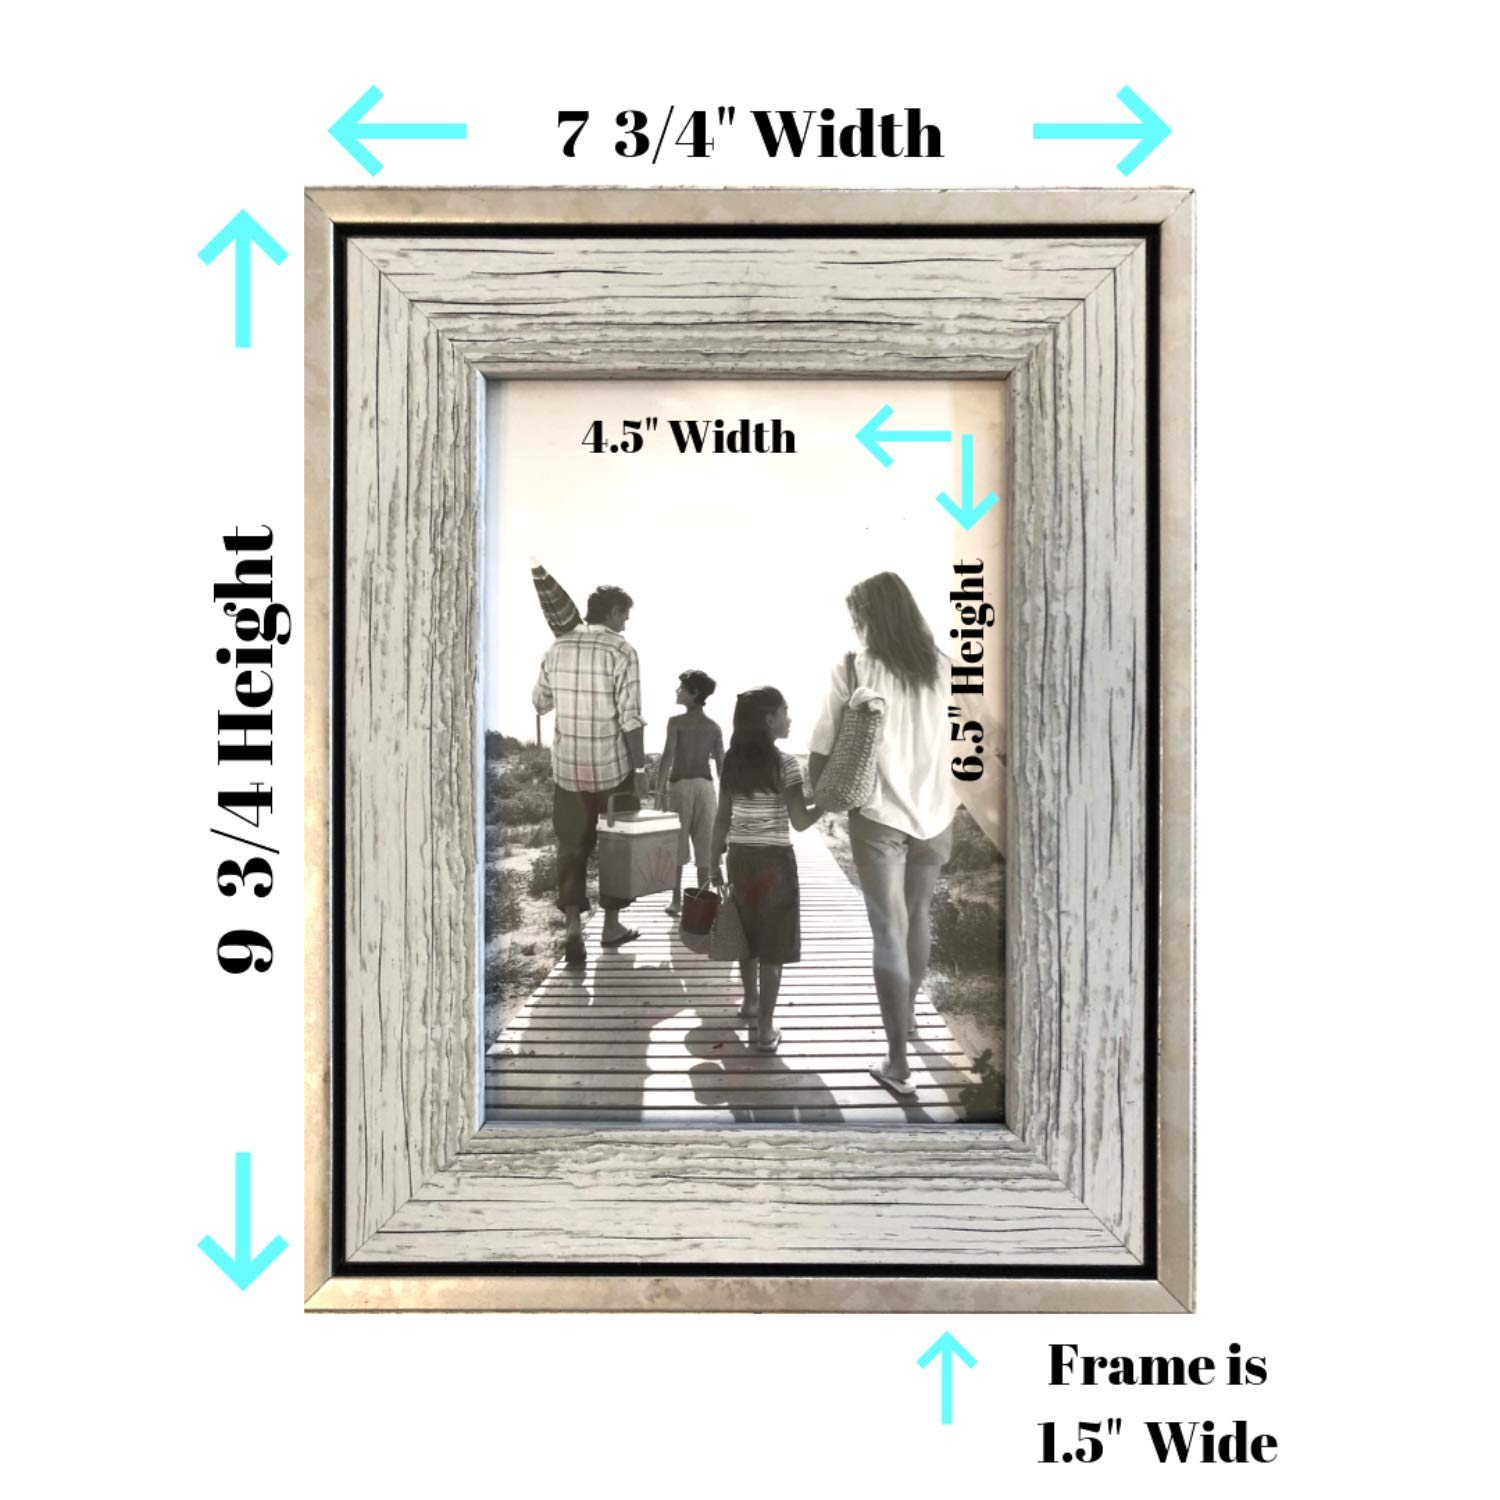 Tasse Verre 5x7 Rustic Frames (3-Pack) - Distressed Farmhouse Industrial Frame - Ready to Hang or Stand - Built-in Easel - Silver Galvanized Metal Look with Wood Insert by Tasse Verre (Image #2)